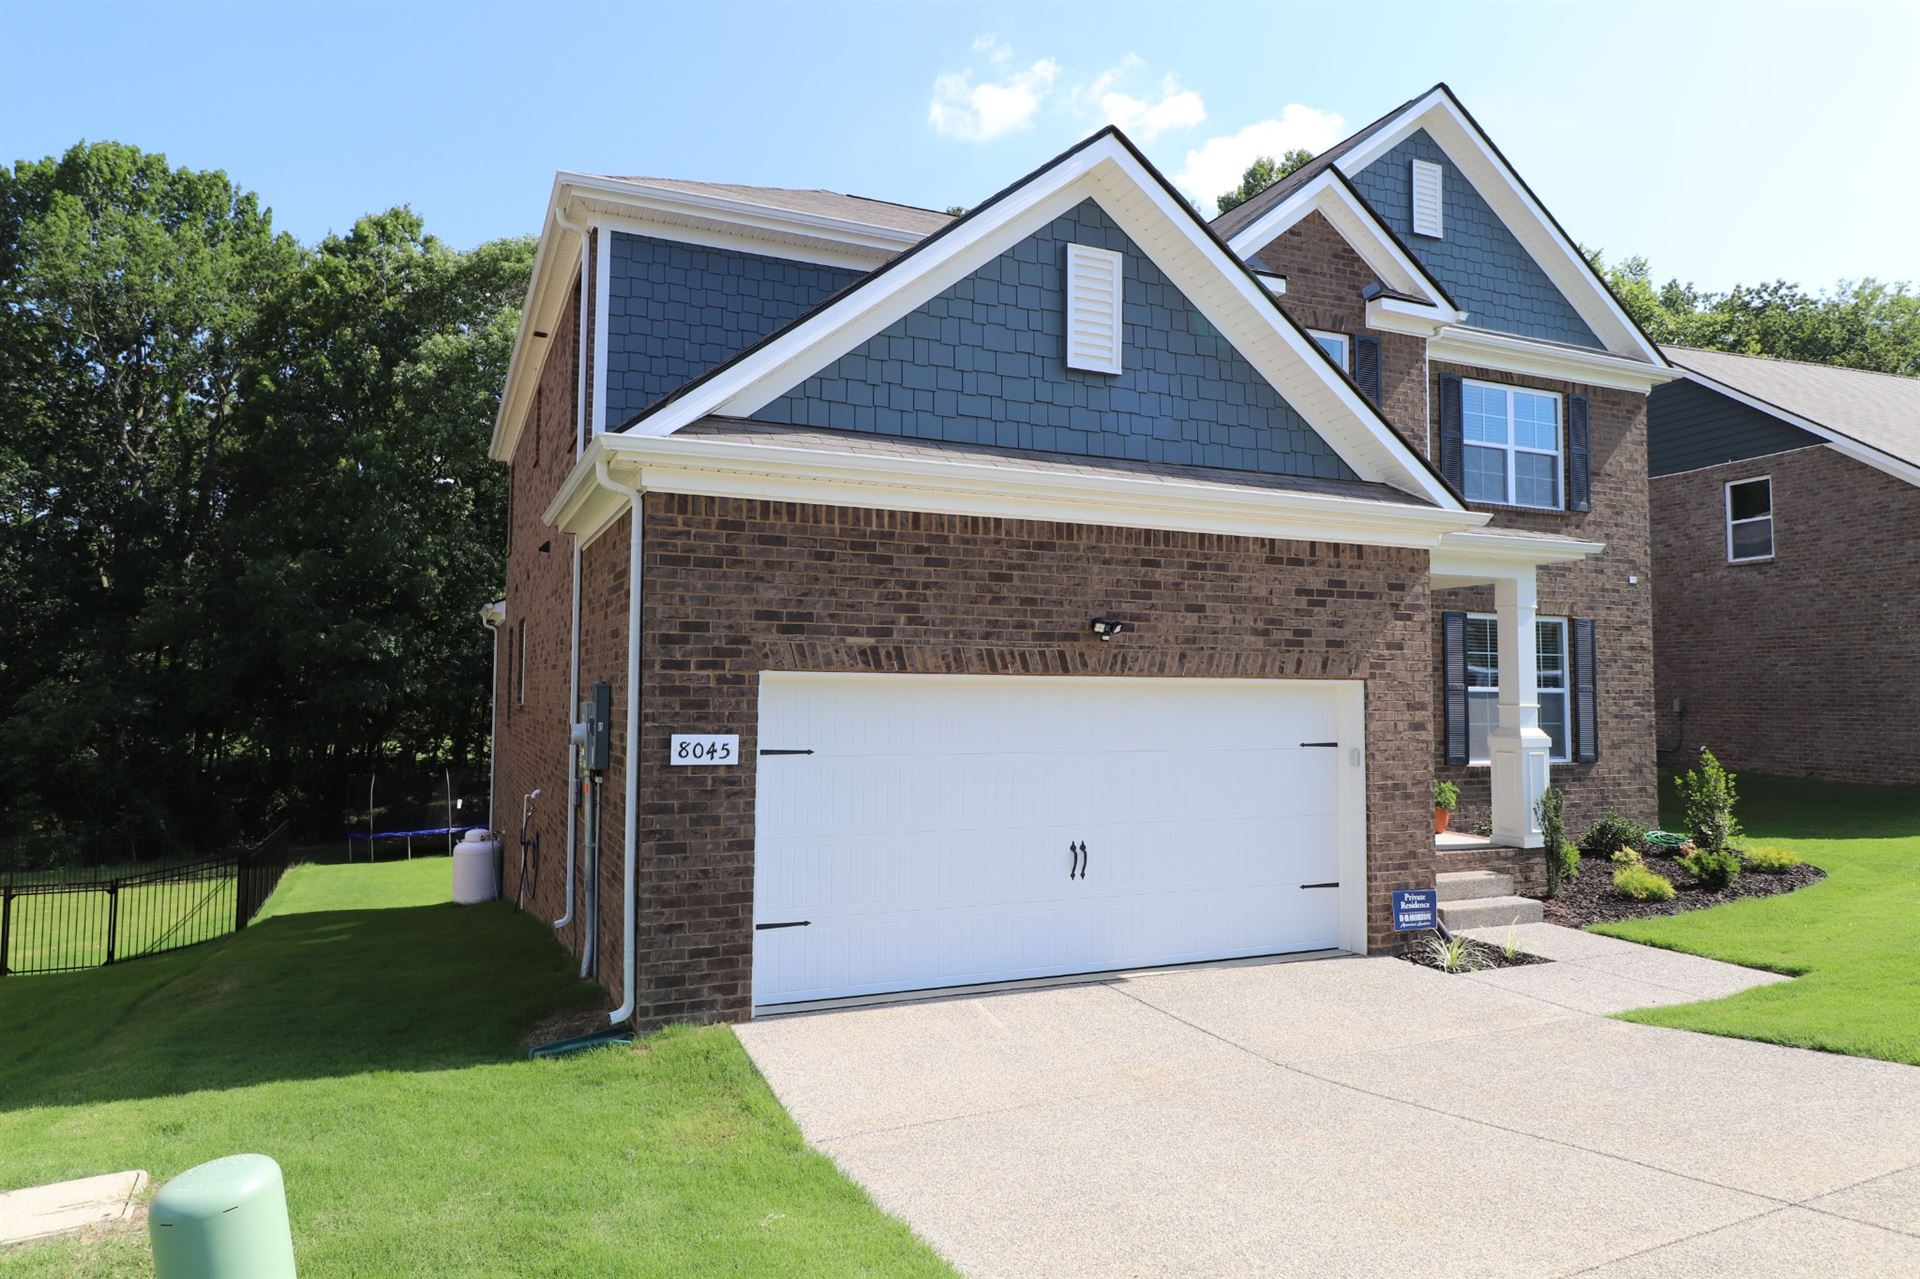 Photo of 8045 Forest Hills Dr, Spring Hill, TN 37174 (MLS # 2122266)